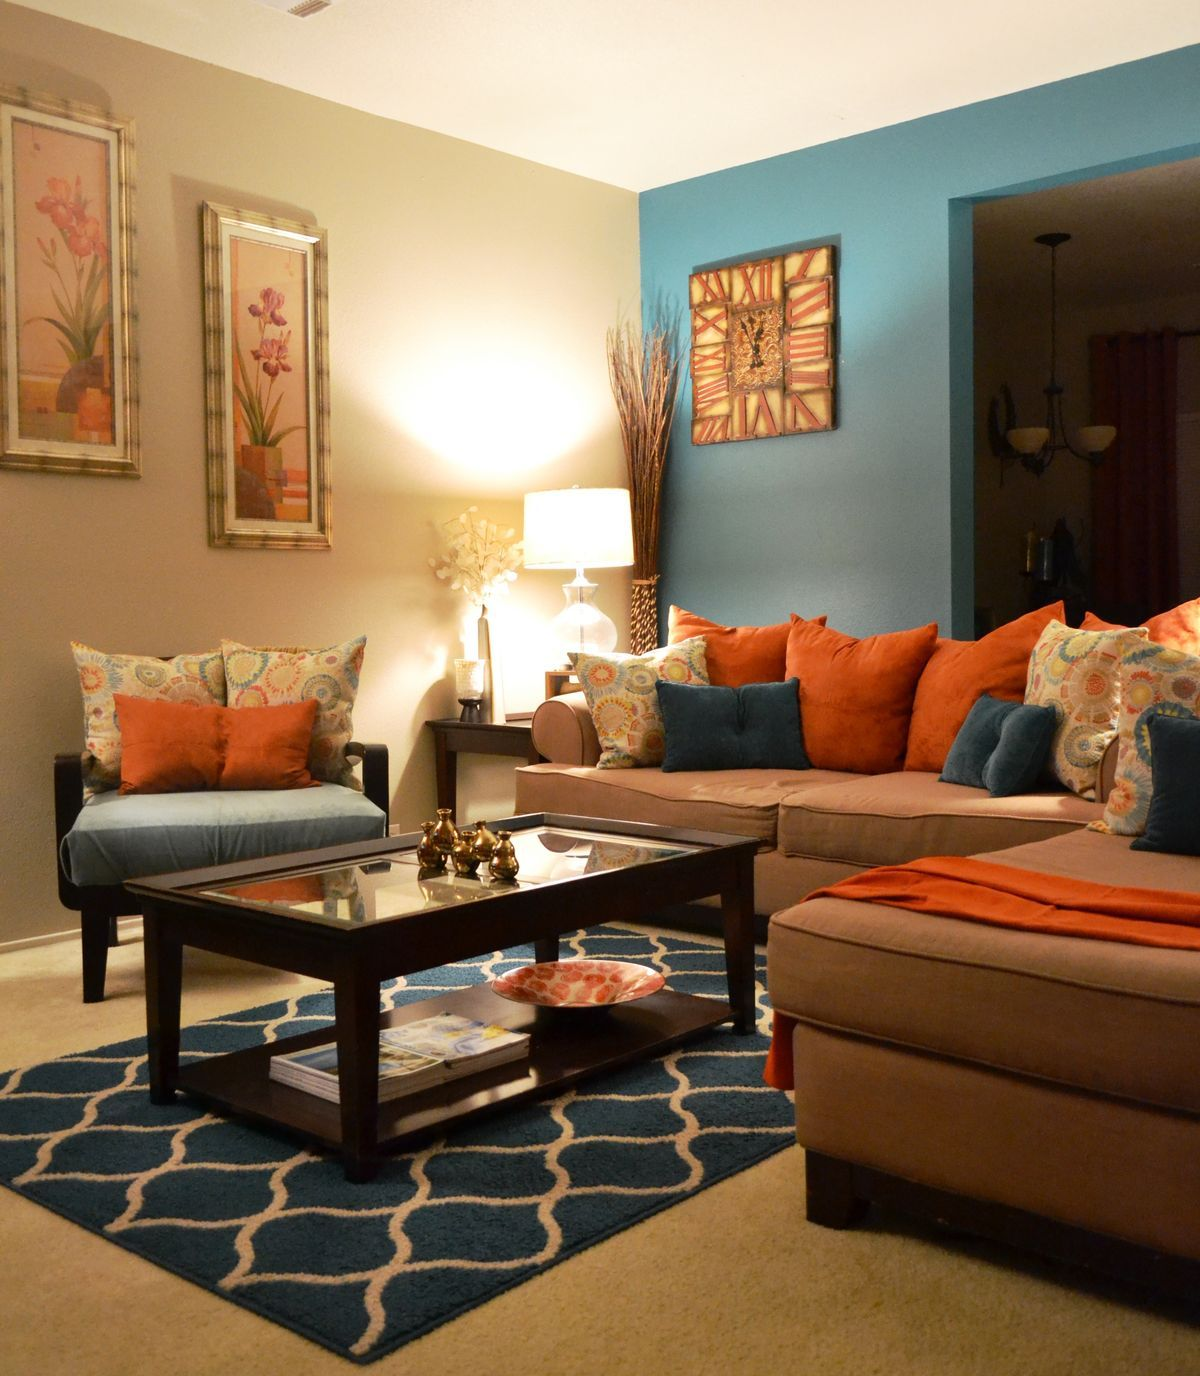 Grey Blue And Brown Living Room Design: 959558b7a3913104a5cf8d0b8a3810c7.jpg 1,200×1,376 Pixels